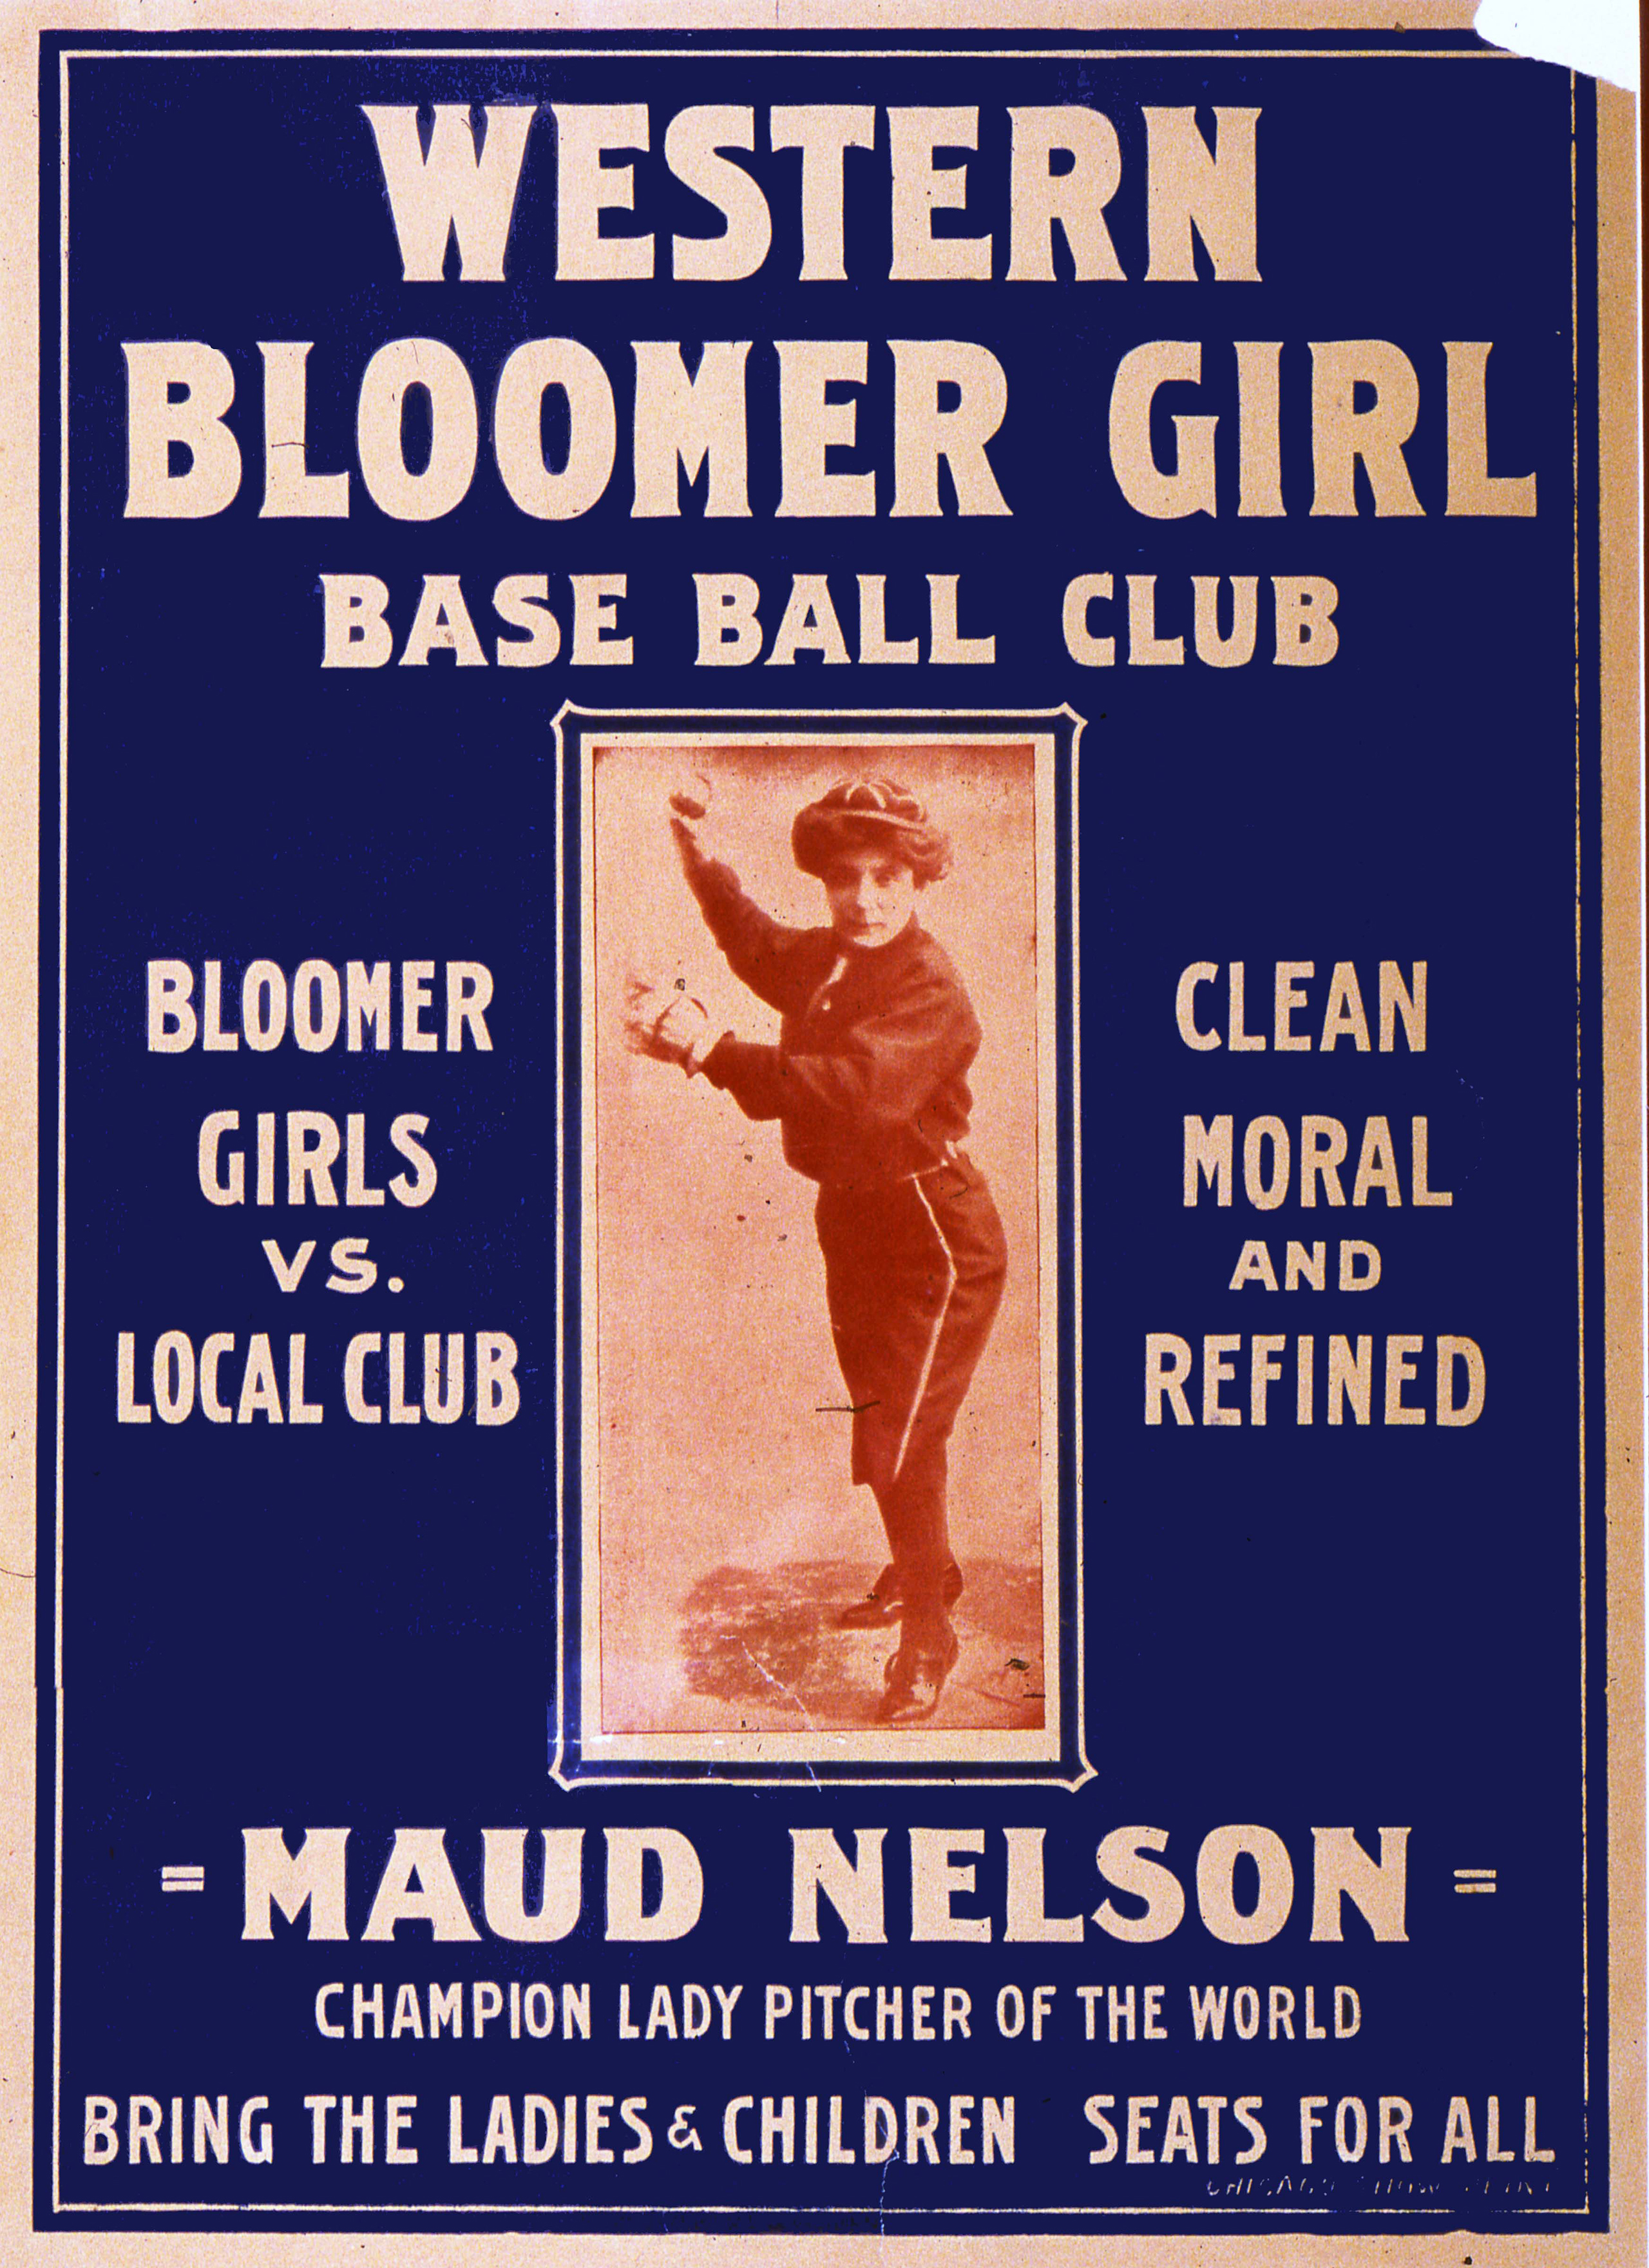 Maud Nelson, the star woman baseball pitcher, is pictured on a poster for the Western Bloomer Girls Base Ball Club, printed in Chicago, circa 1910.